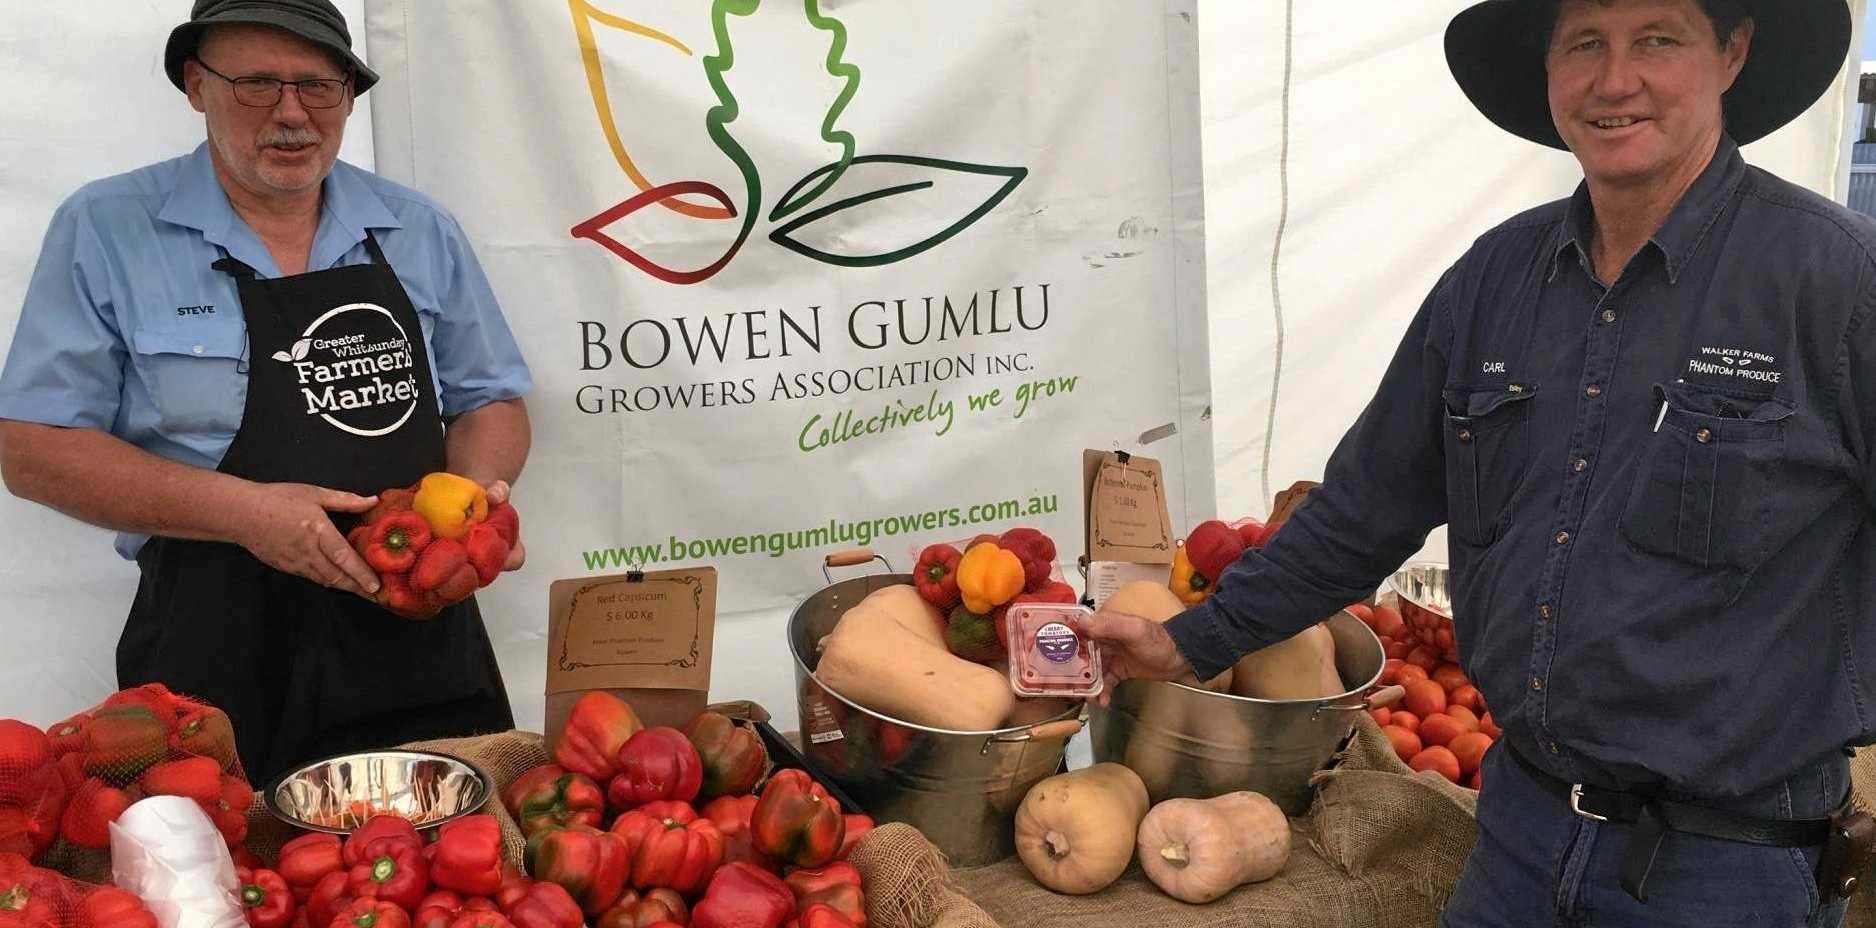 STAYING FRESH: Steve Schmidt from Vegie Unlimited handled the logistics for the Bowen Gumlu Growers Association members, like Carl Walker, to provide the Greater Whitsunday Farmers Market with produce.